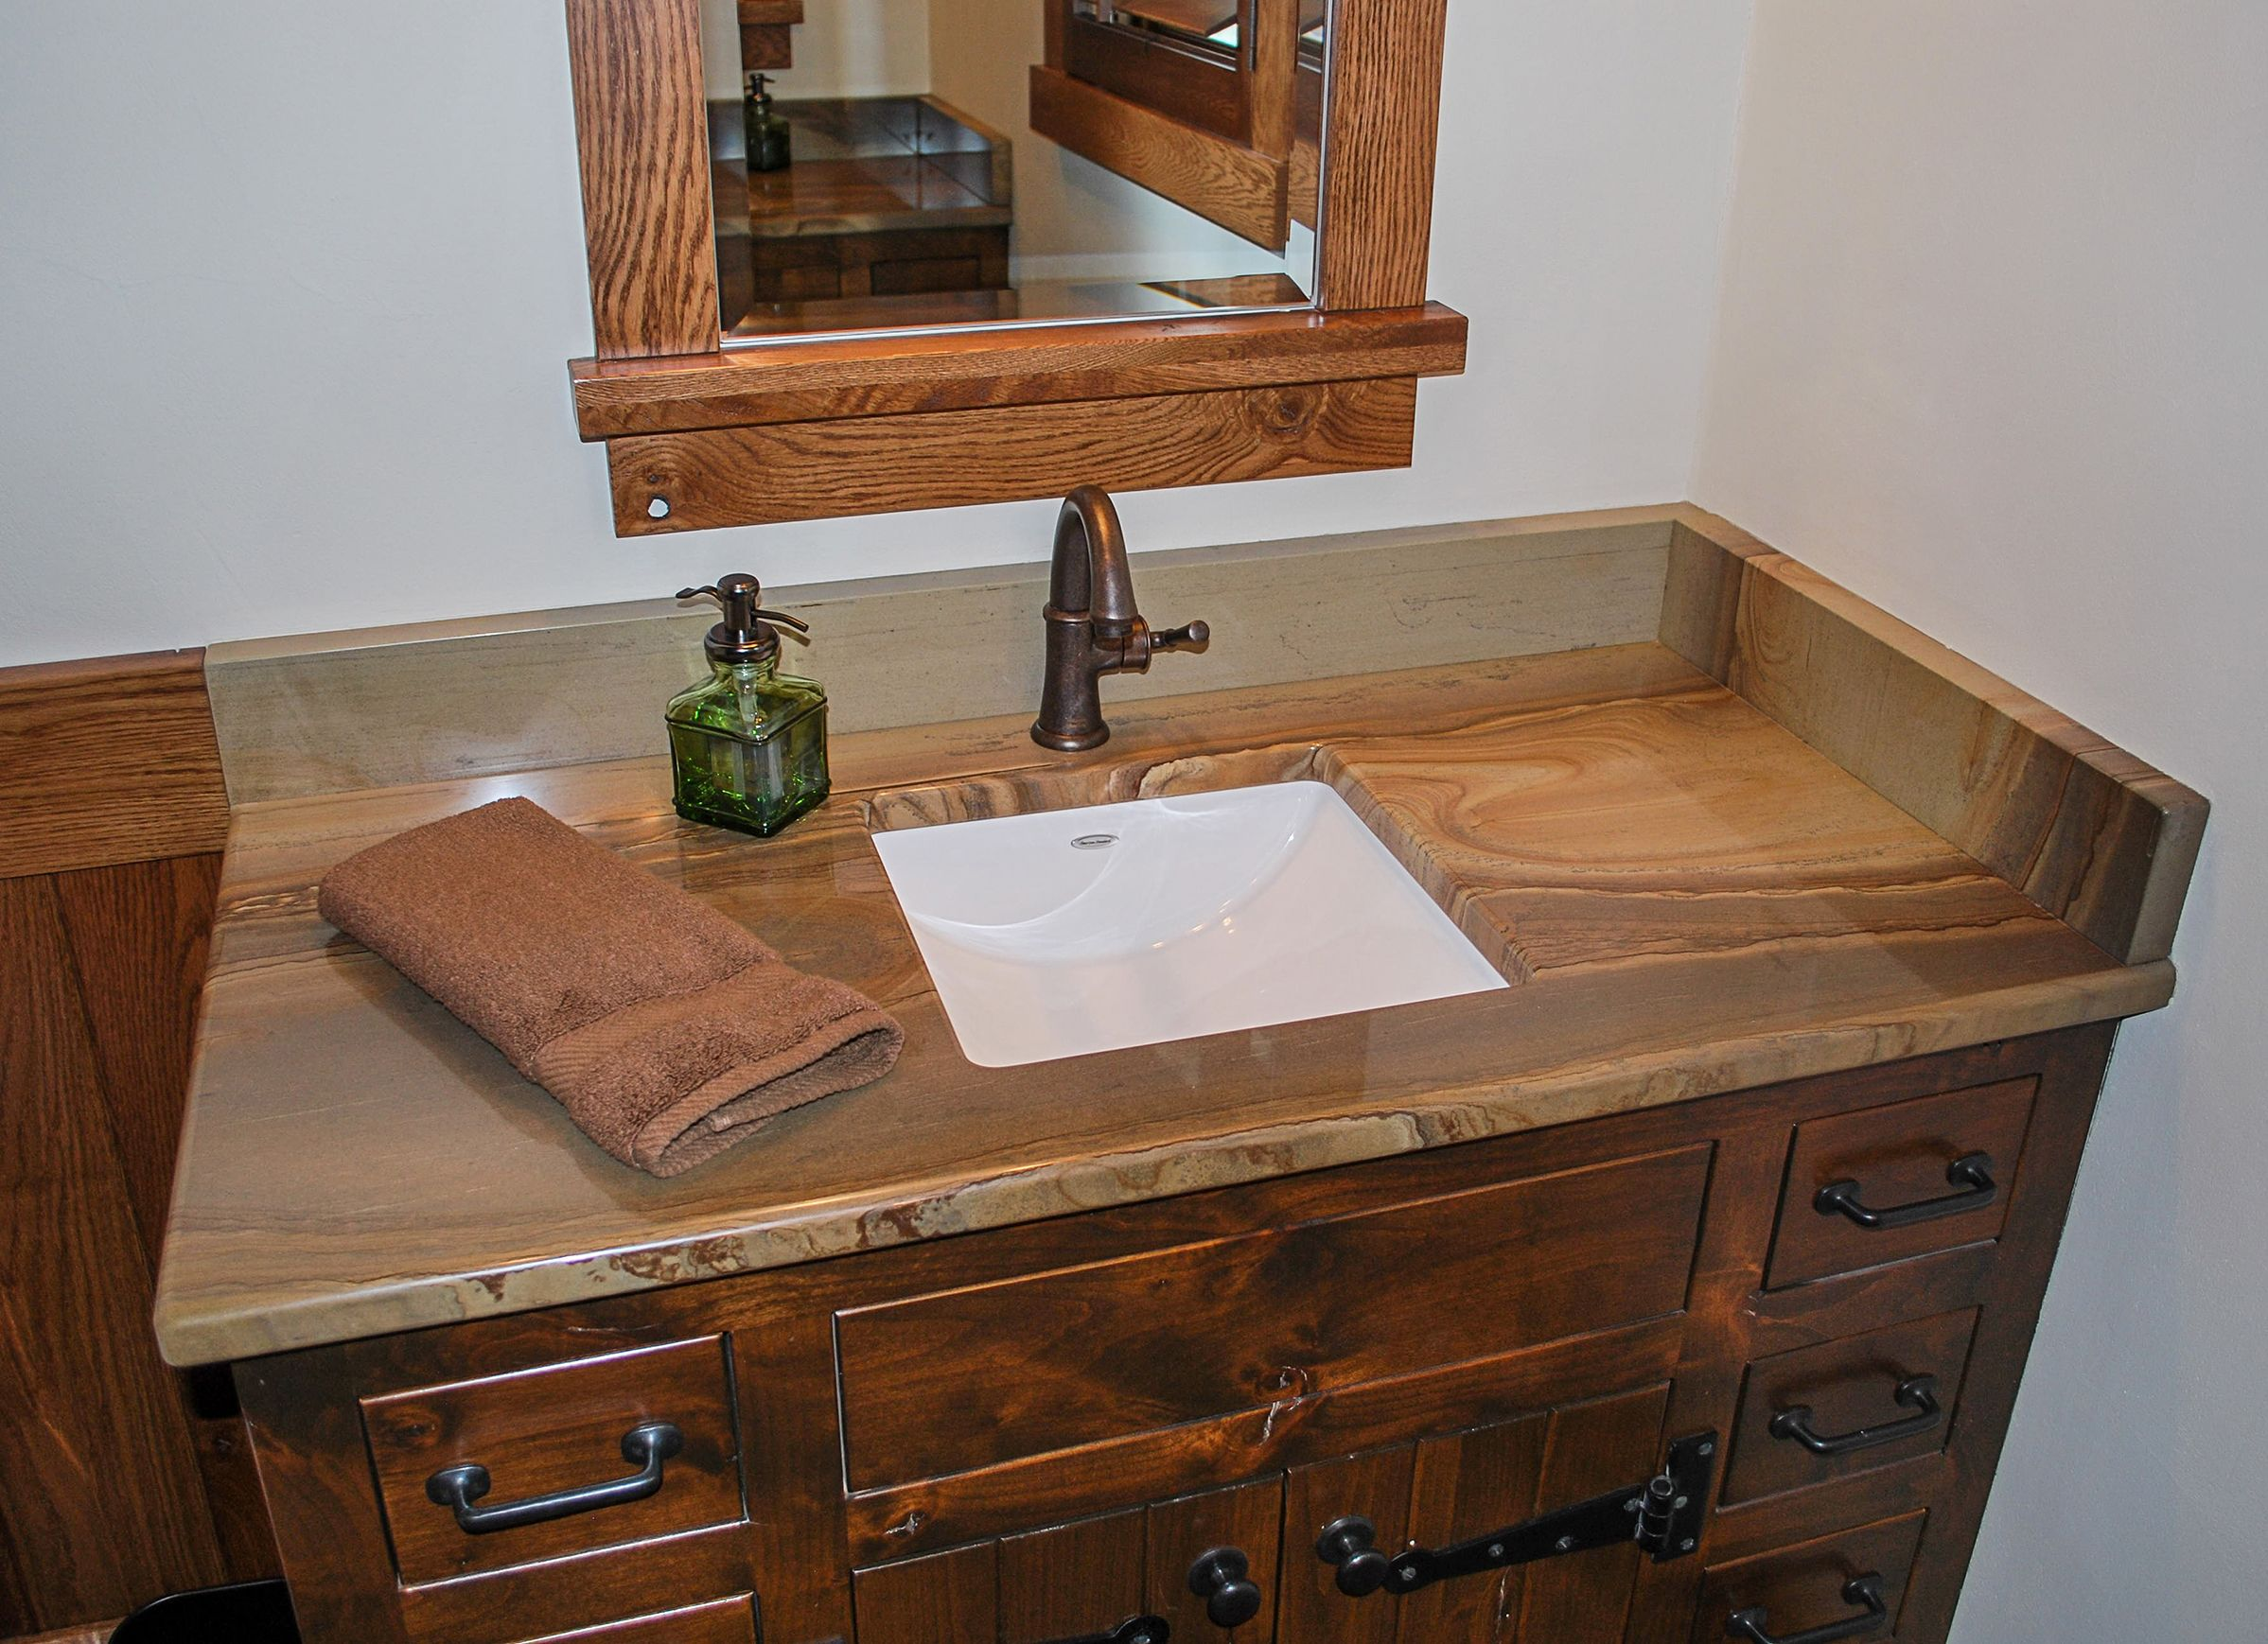 Brentwood Natural Stone Countertops Rustic Lake Houses Building A New Home